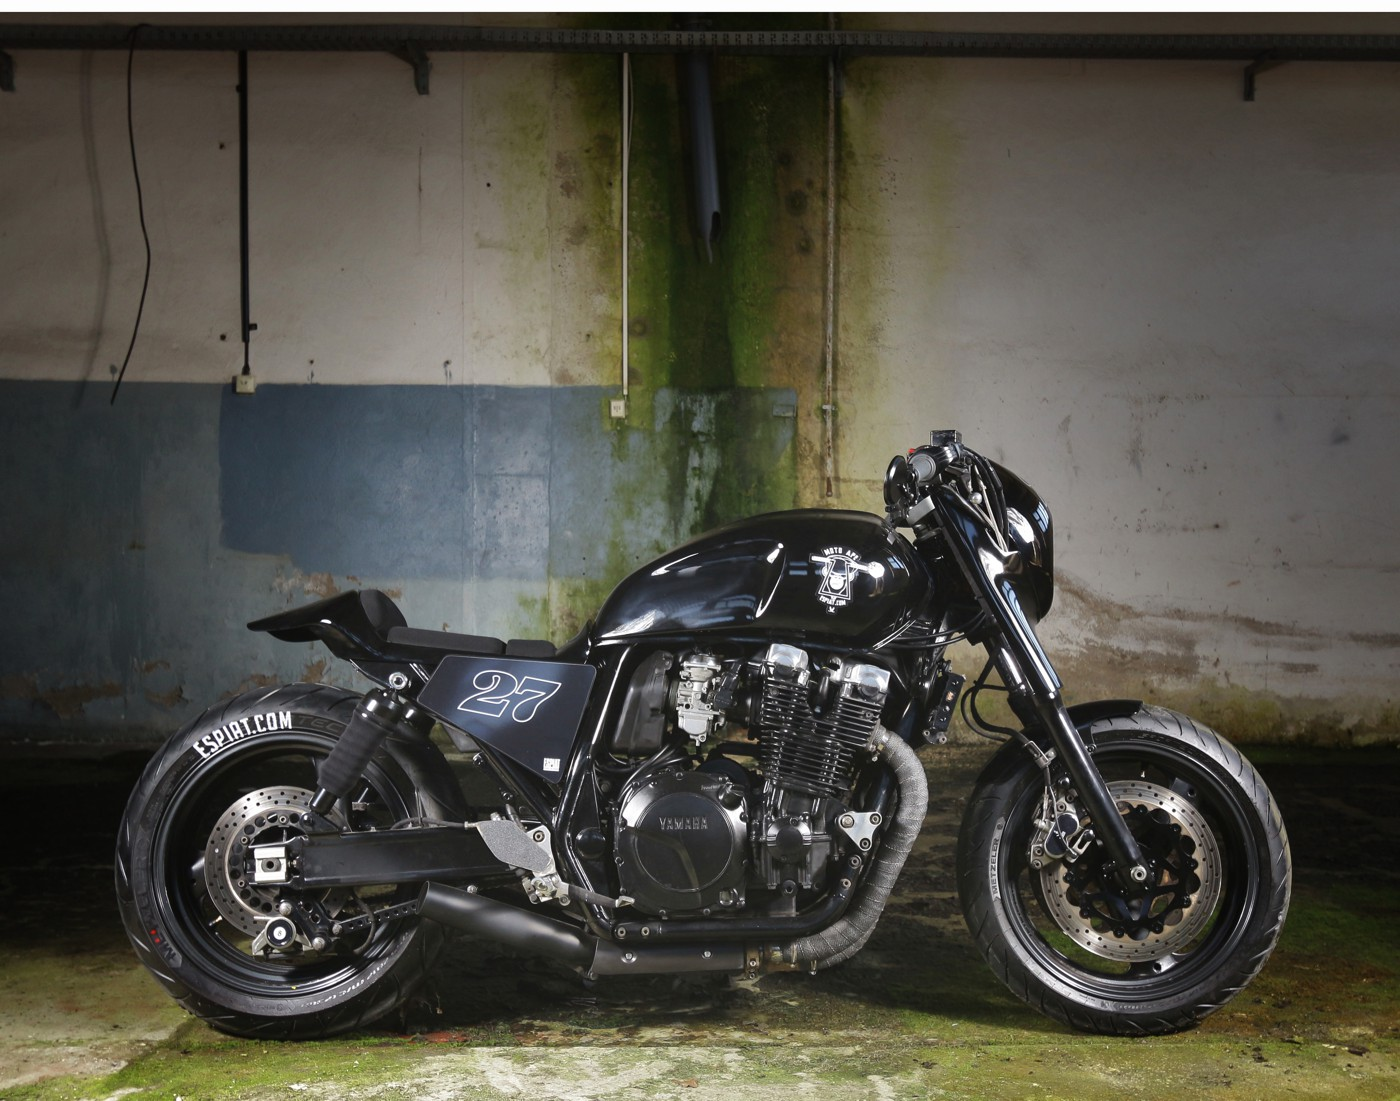 streght-fighter-xjr-daniel-schuh-dragster-cafe-racer